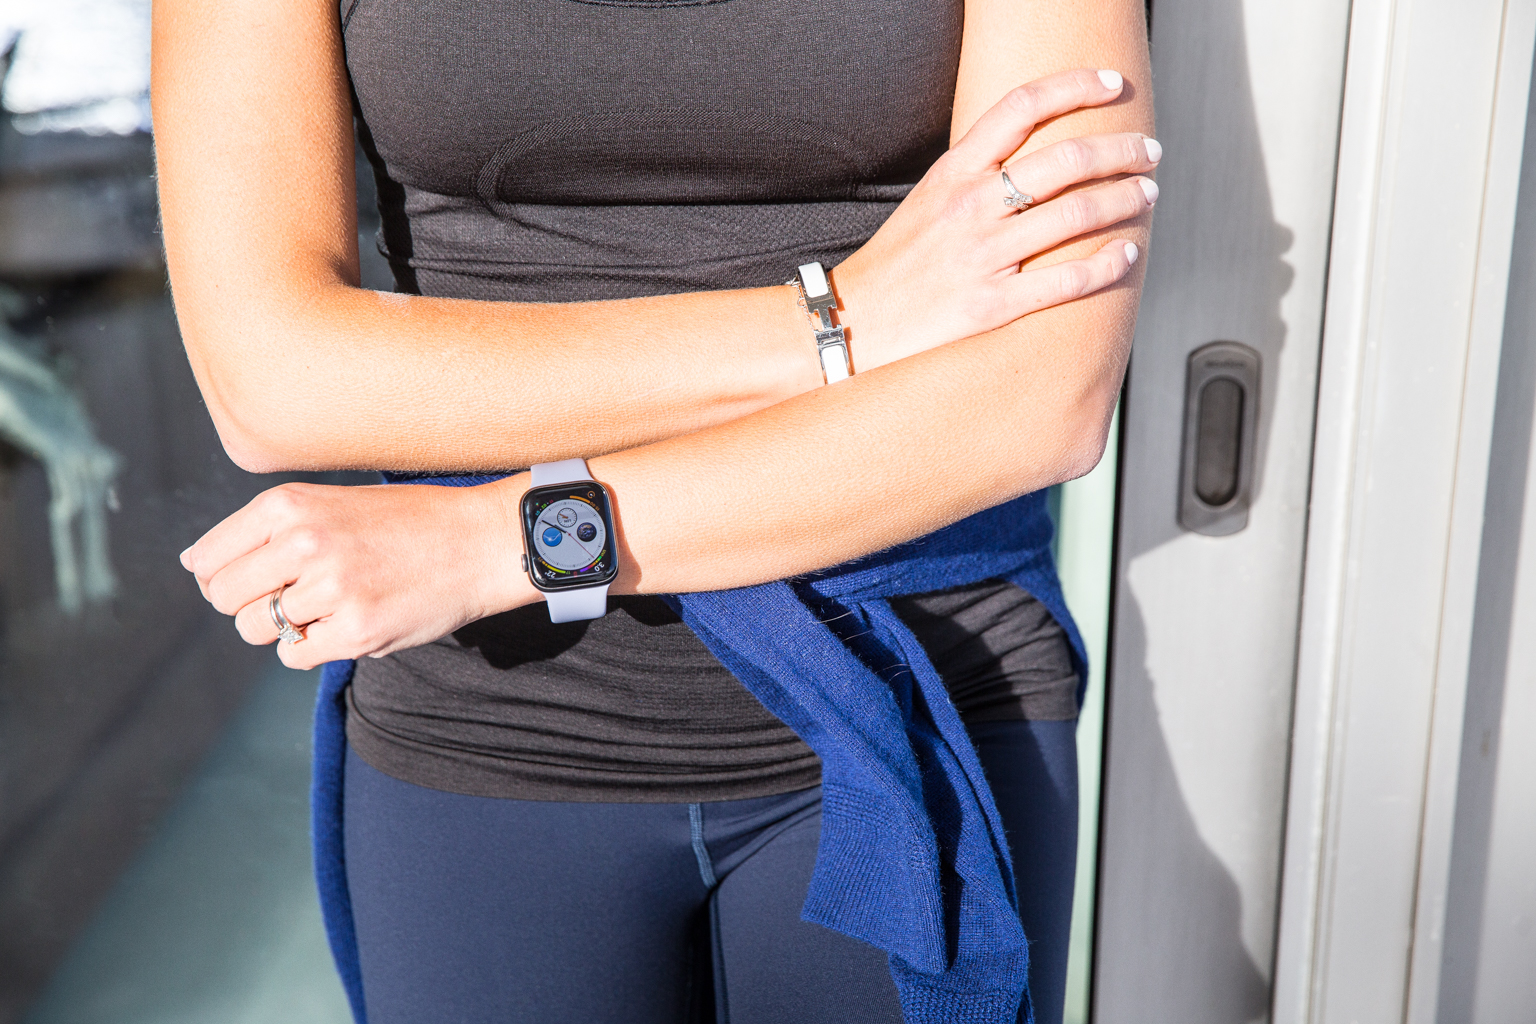 Fitness On Toast Faya Blog Girl Healthy Workout Review Fit Technology Tracker Apple Watch Series 4 First Review Impressions Sweden Travel Archipelago Island Active Lifestyle Tech-4